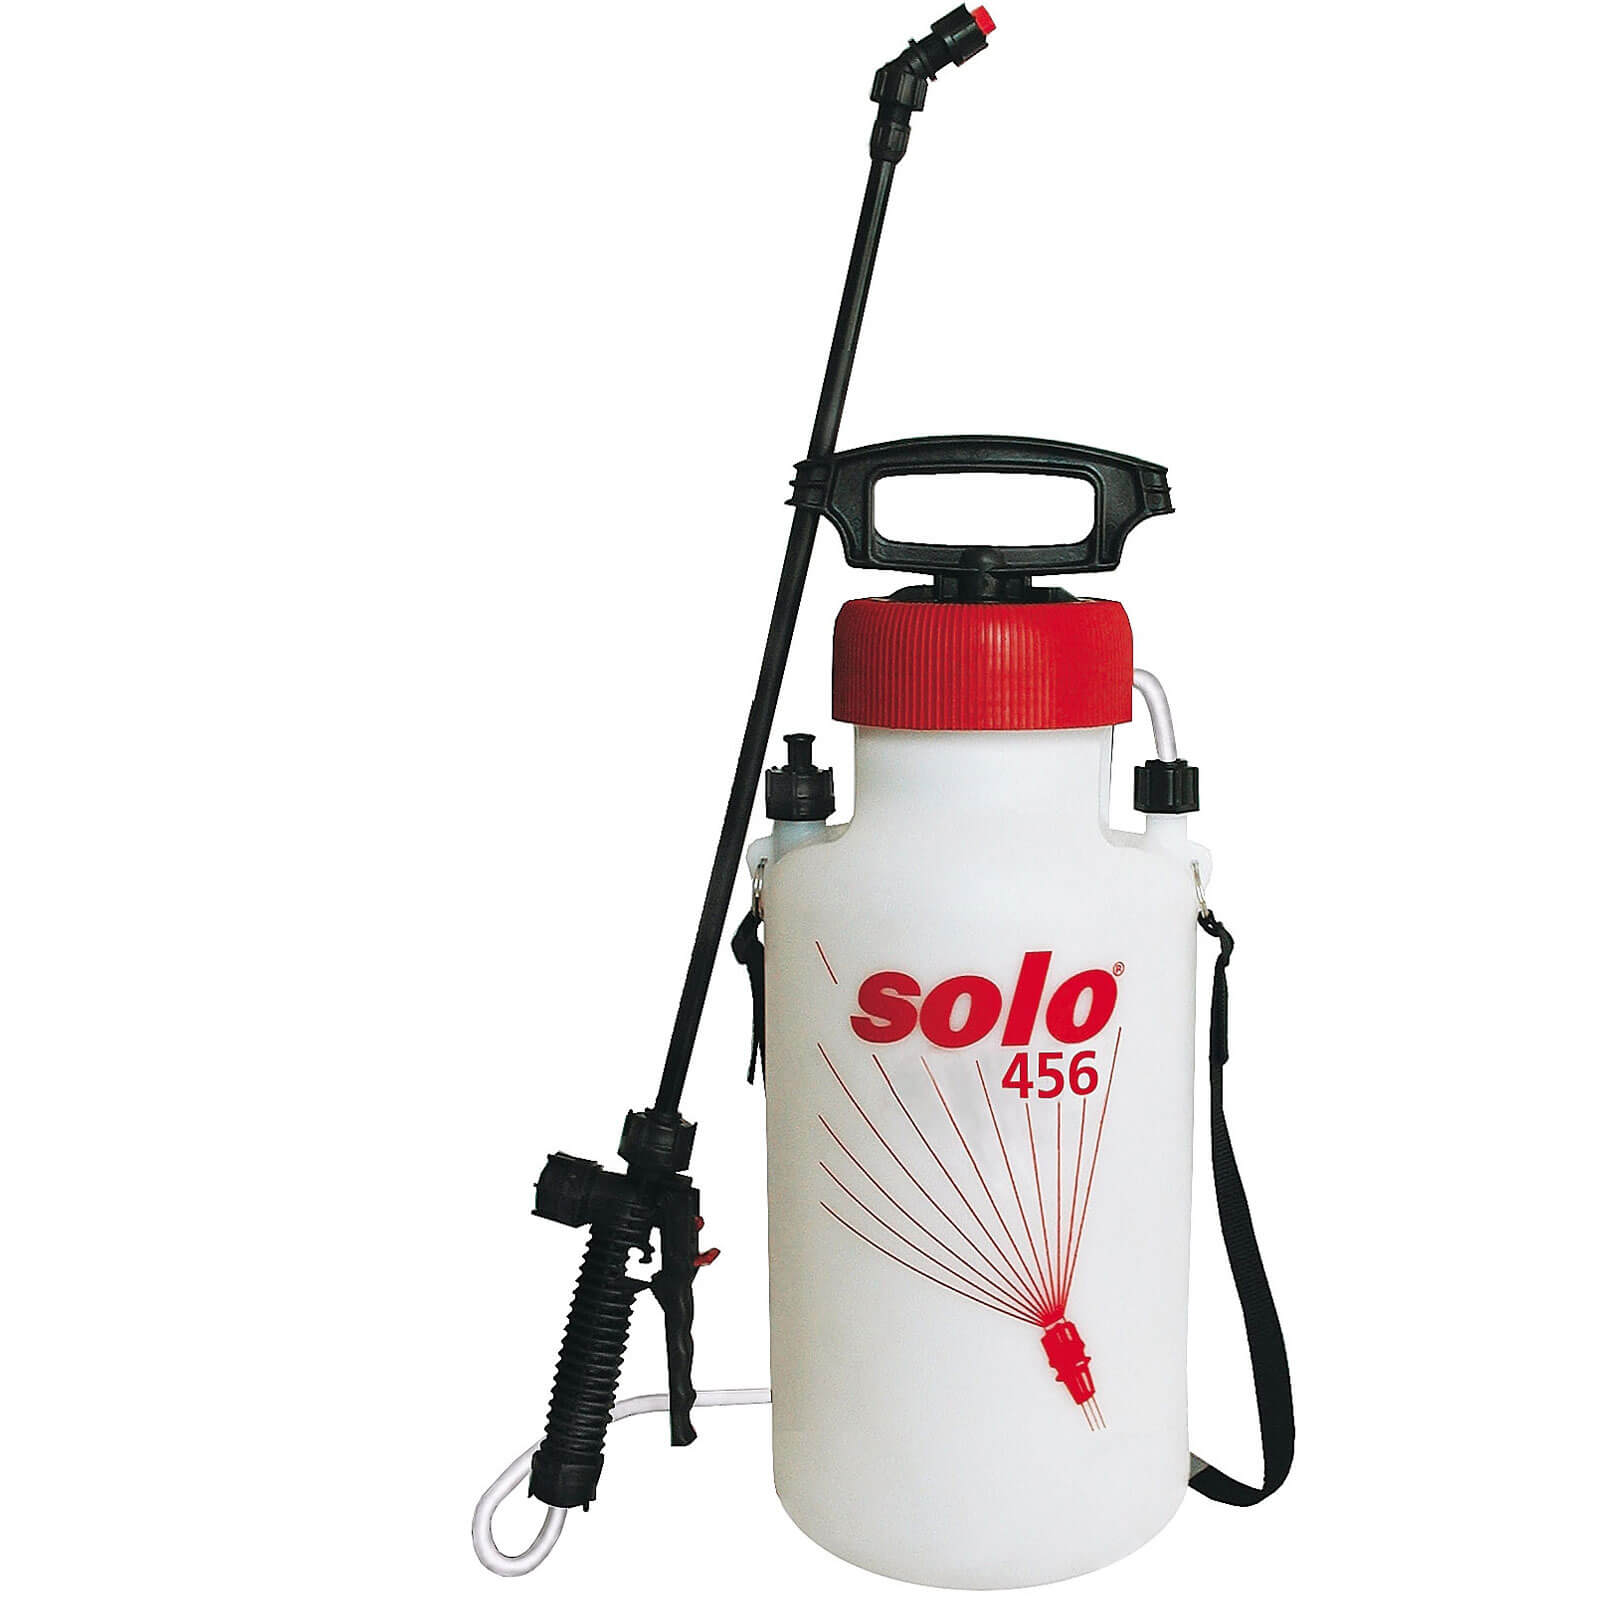 Solo 456 Chemical & Water Pressure Sprayer 7.5 Litres Holds 5 Litres with 500mm Spray Lance